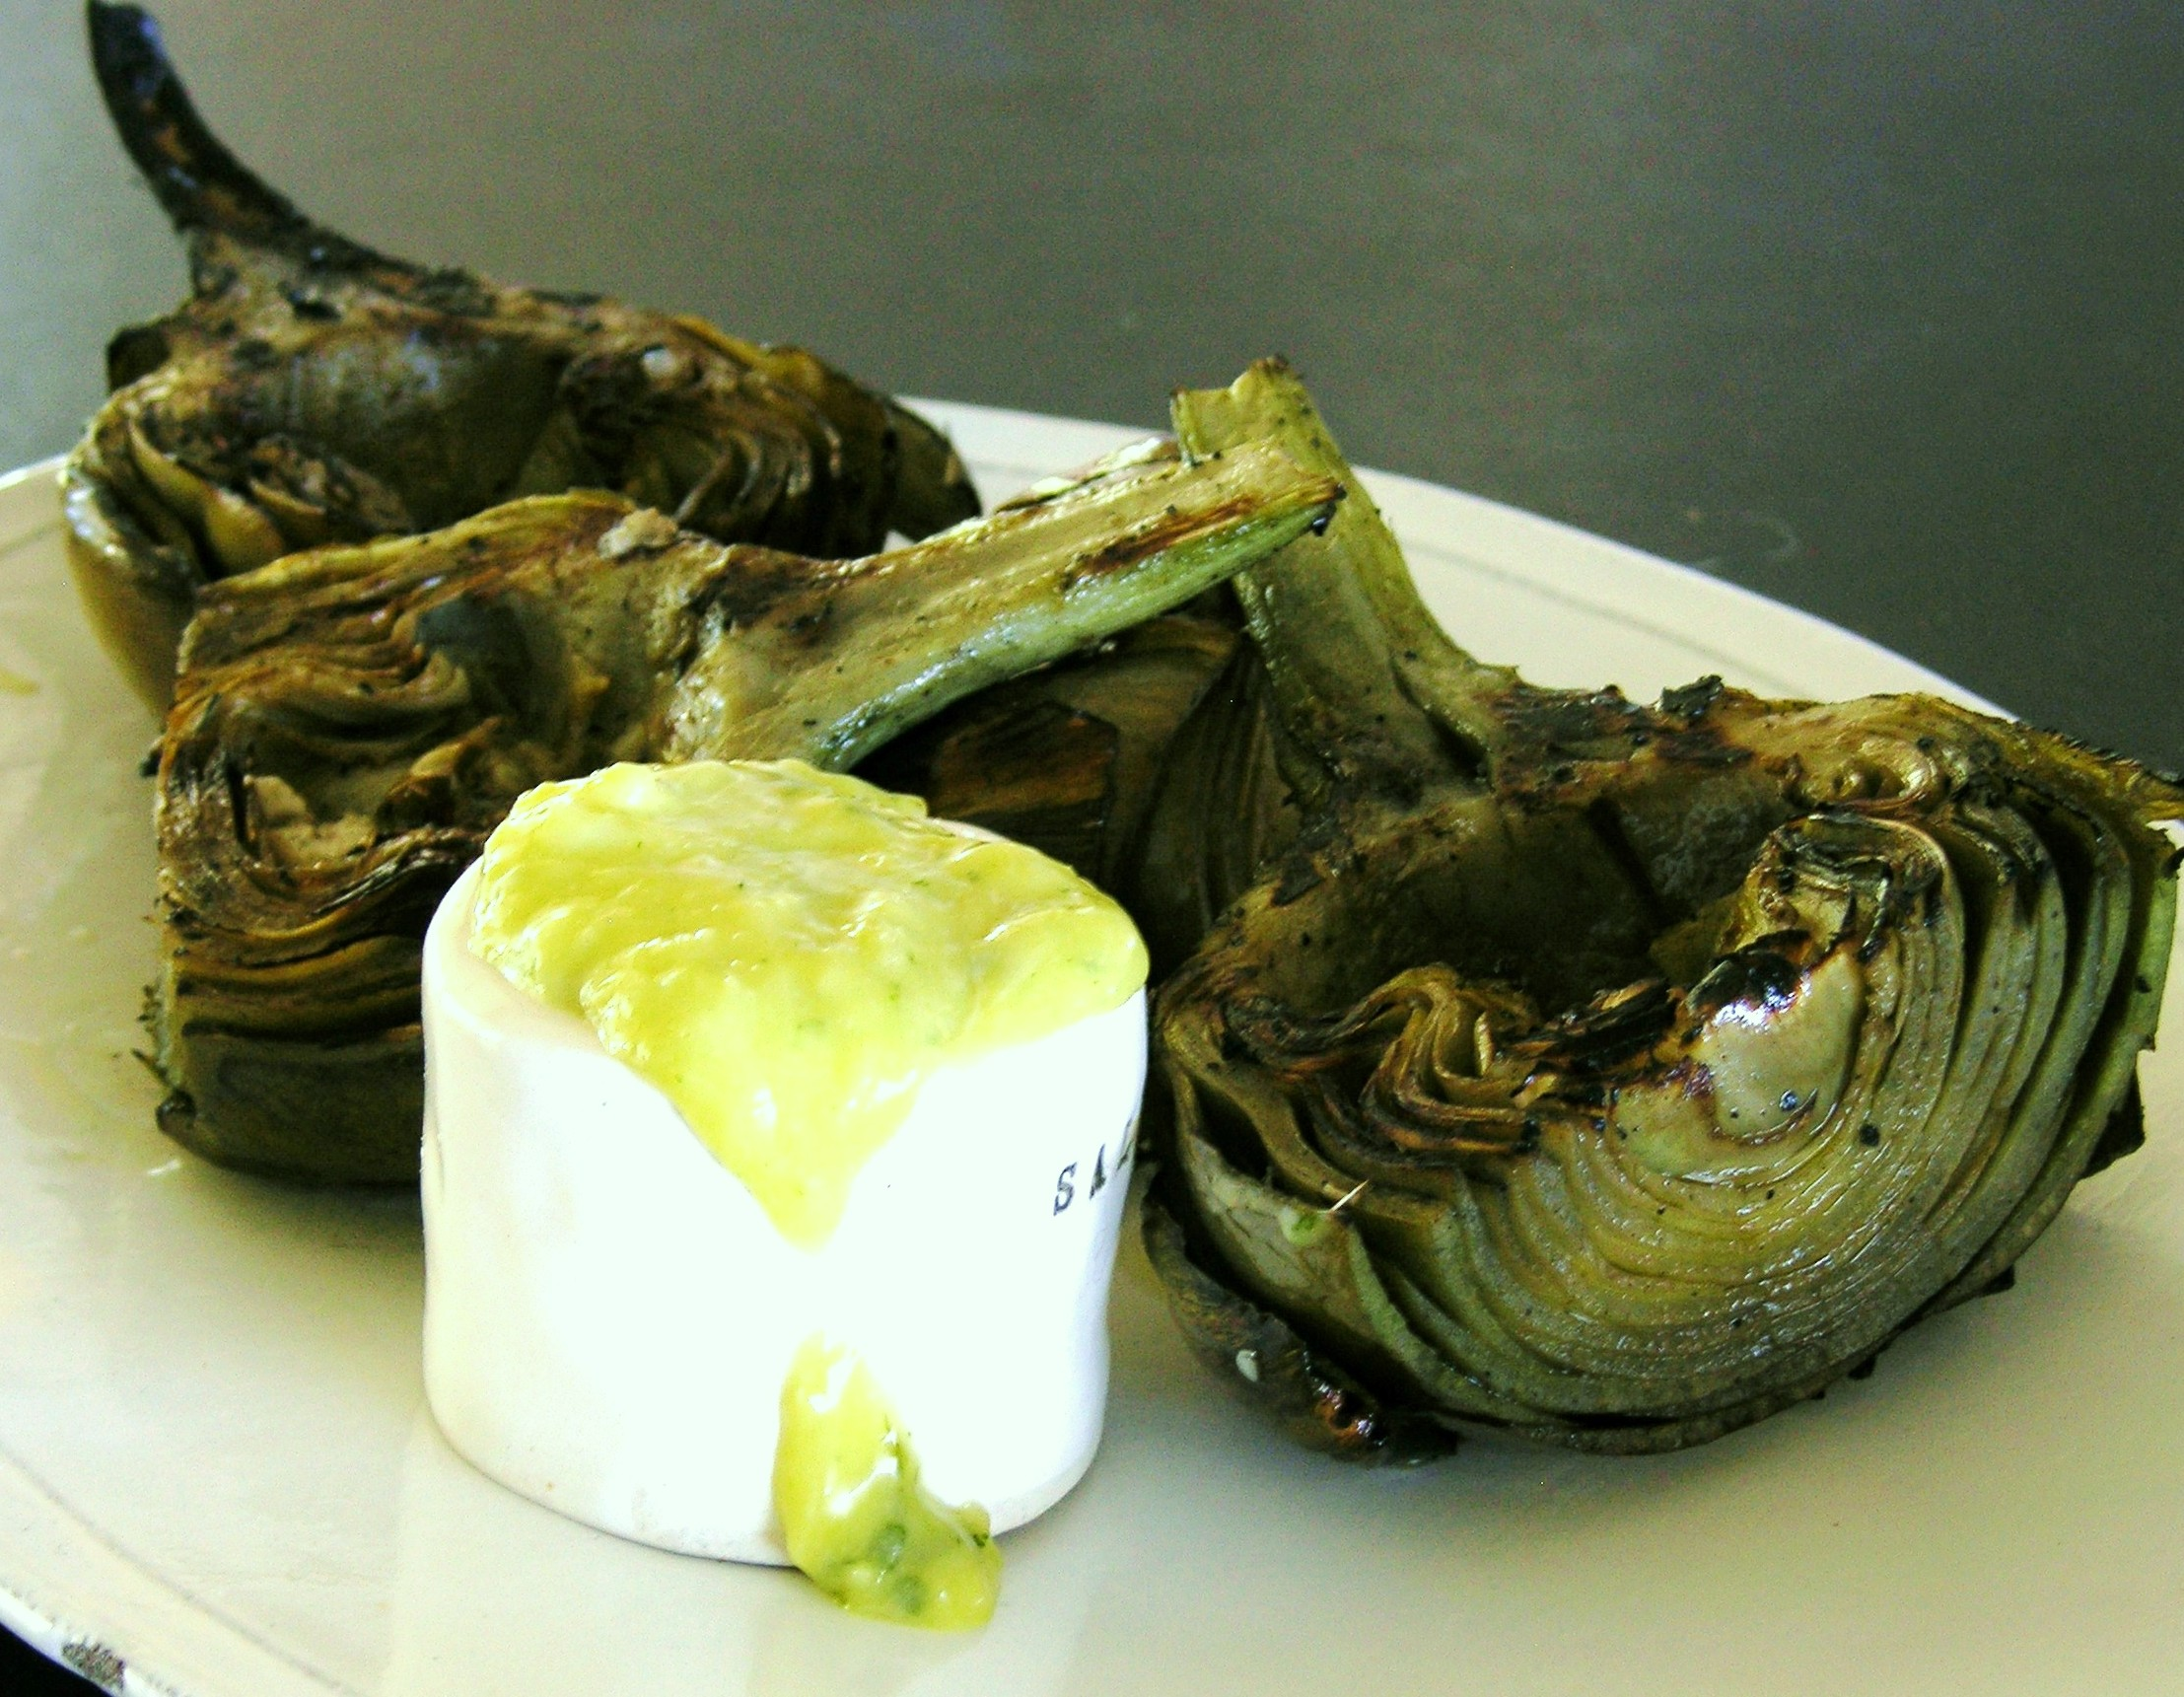 ... aioli tarragon lemon aioli served with grilled artichokes recipe on